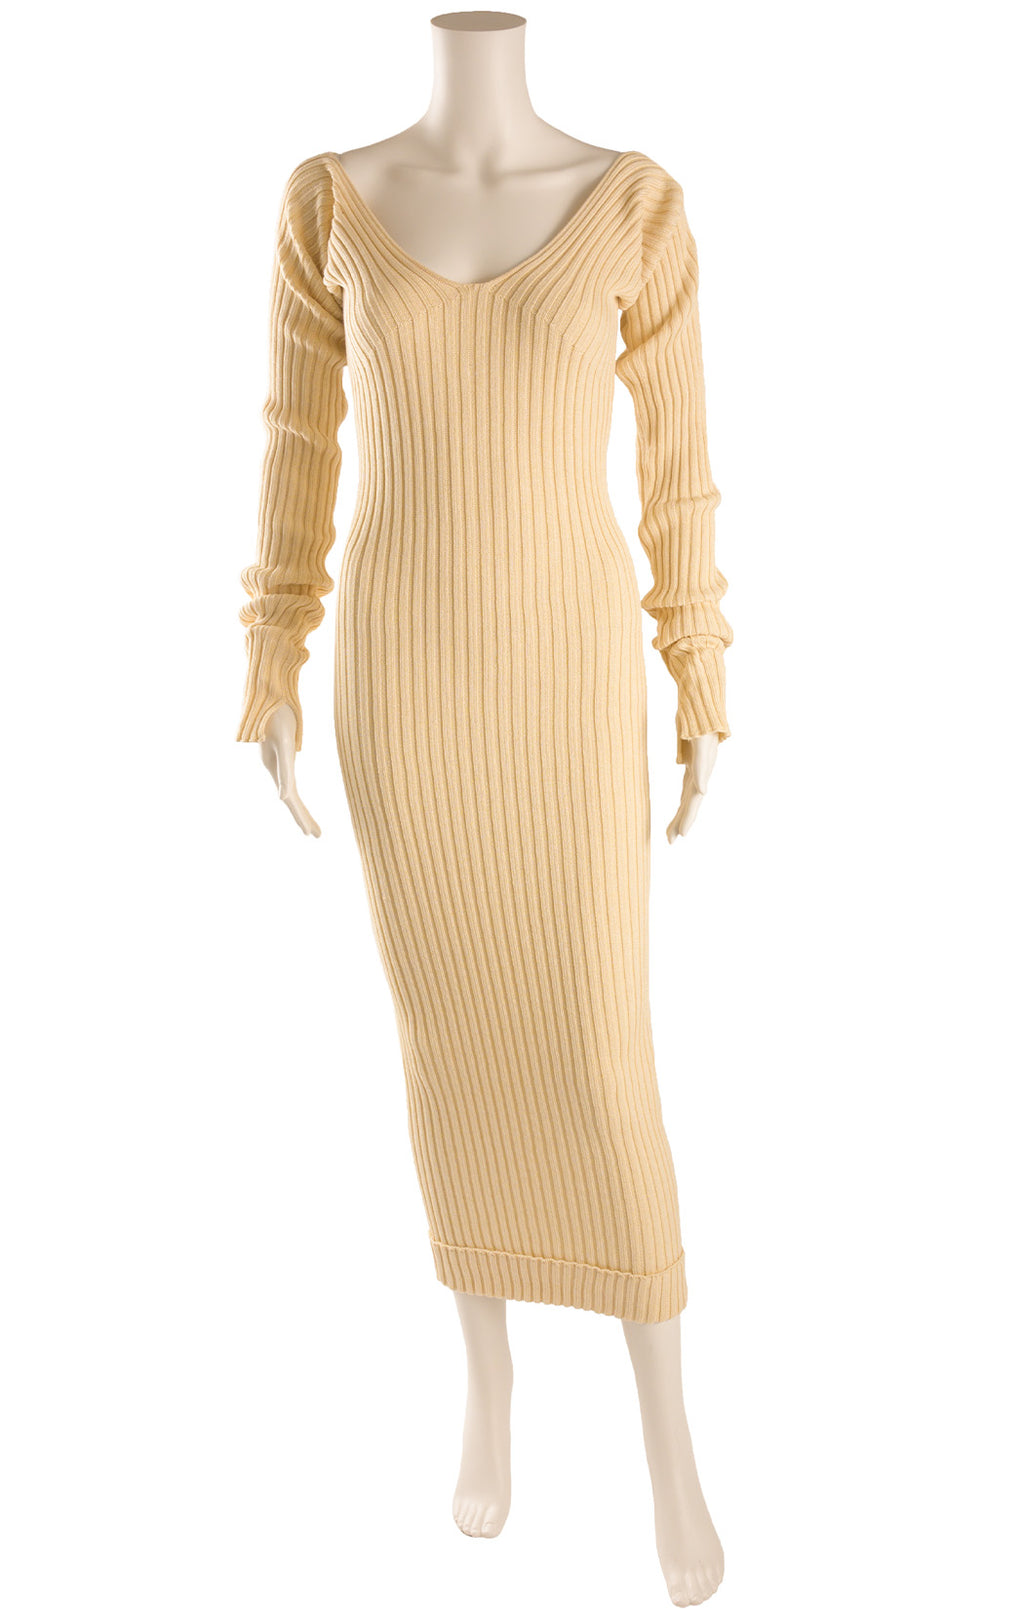 Front view of CELINE Sweater dress Size: Medium